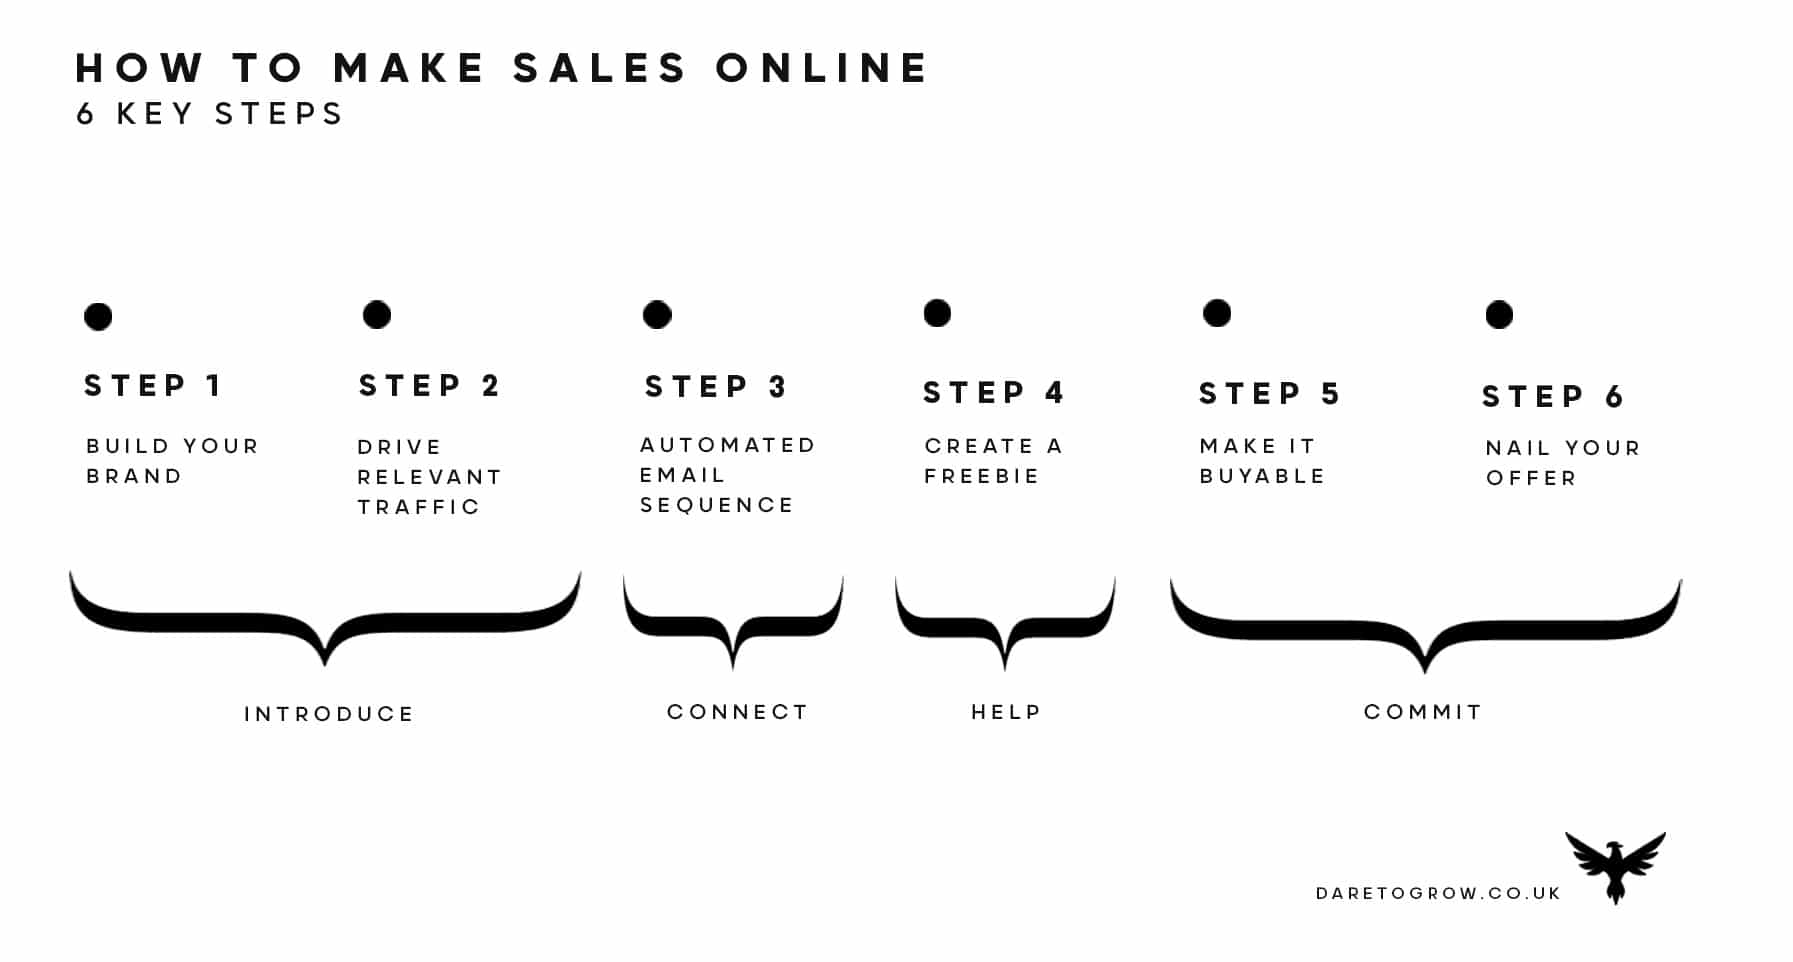 How to make sales online using online funnel marketing